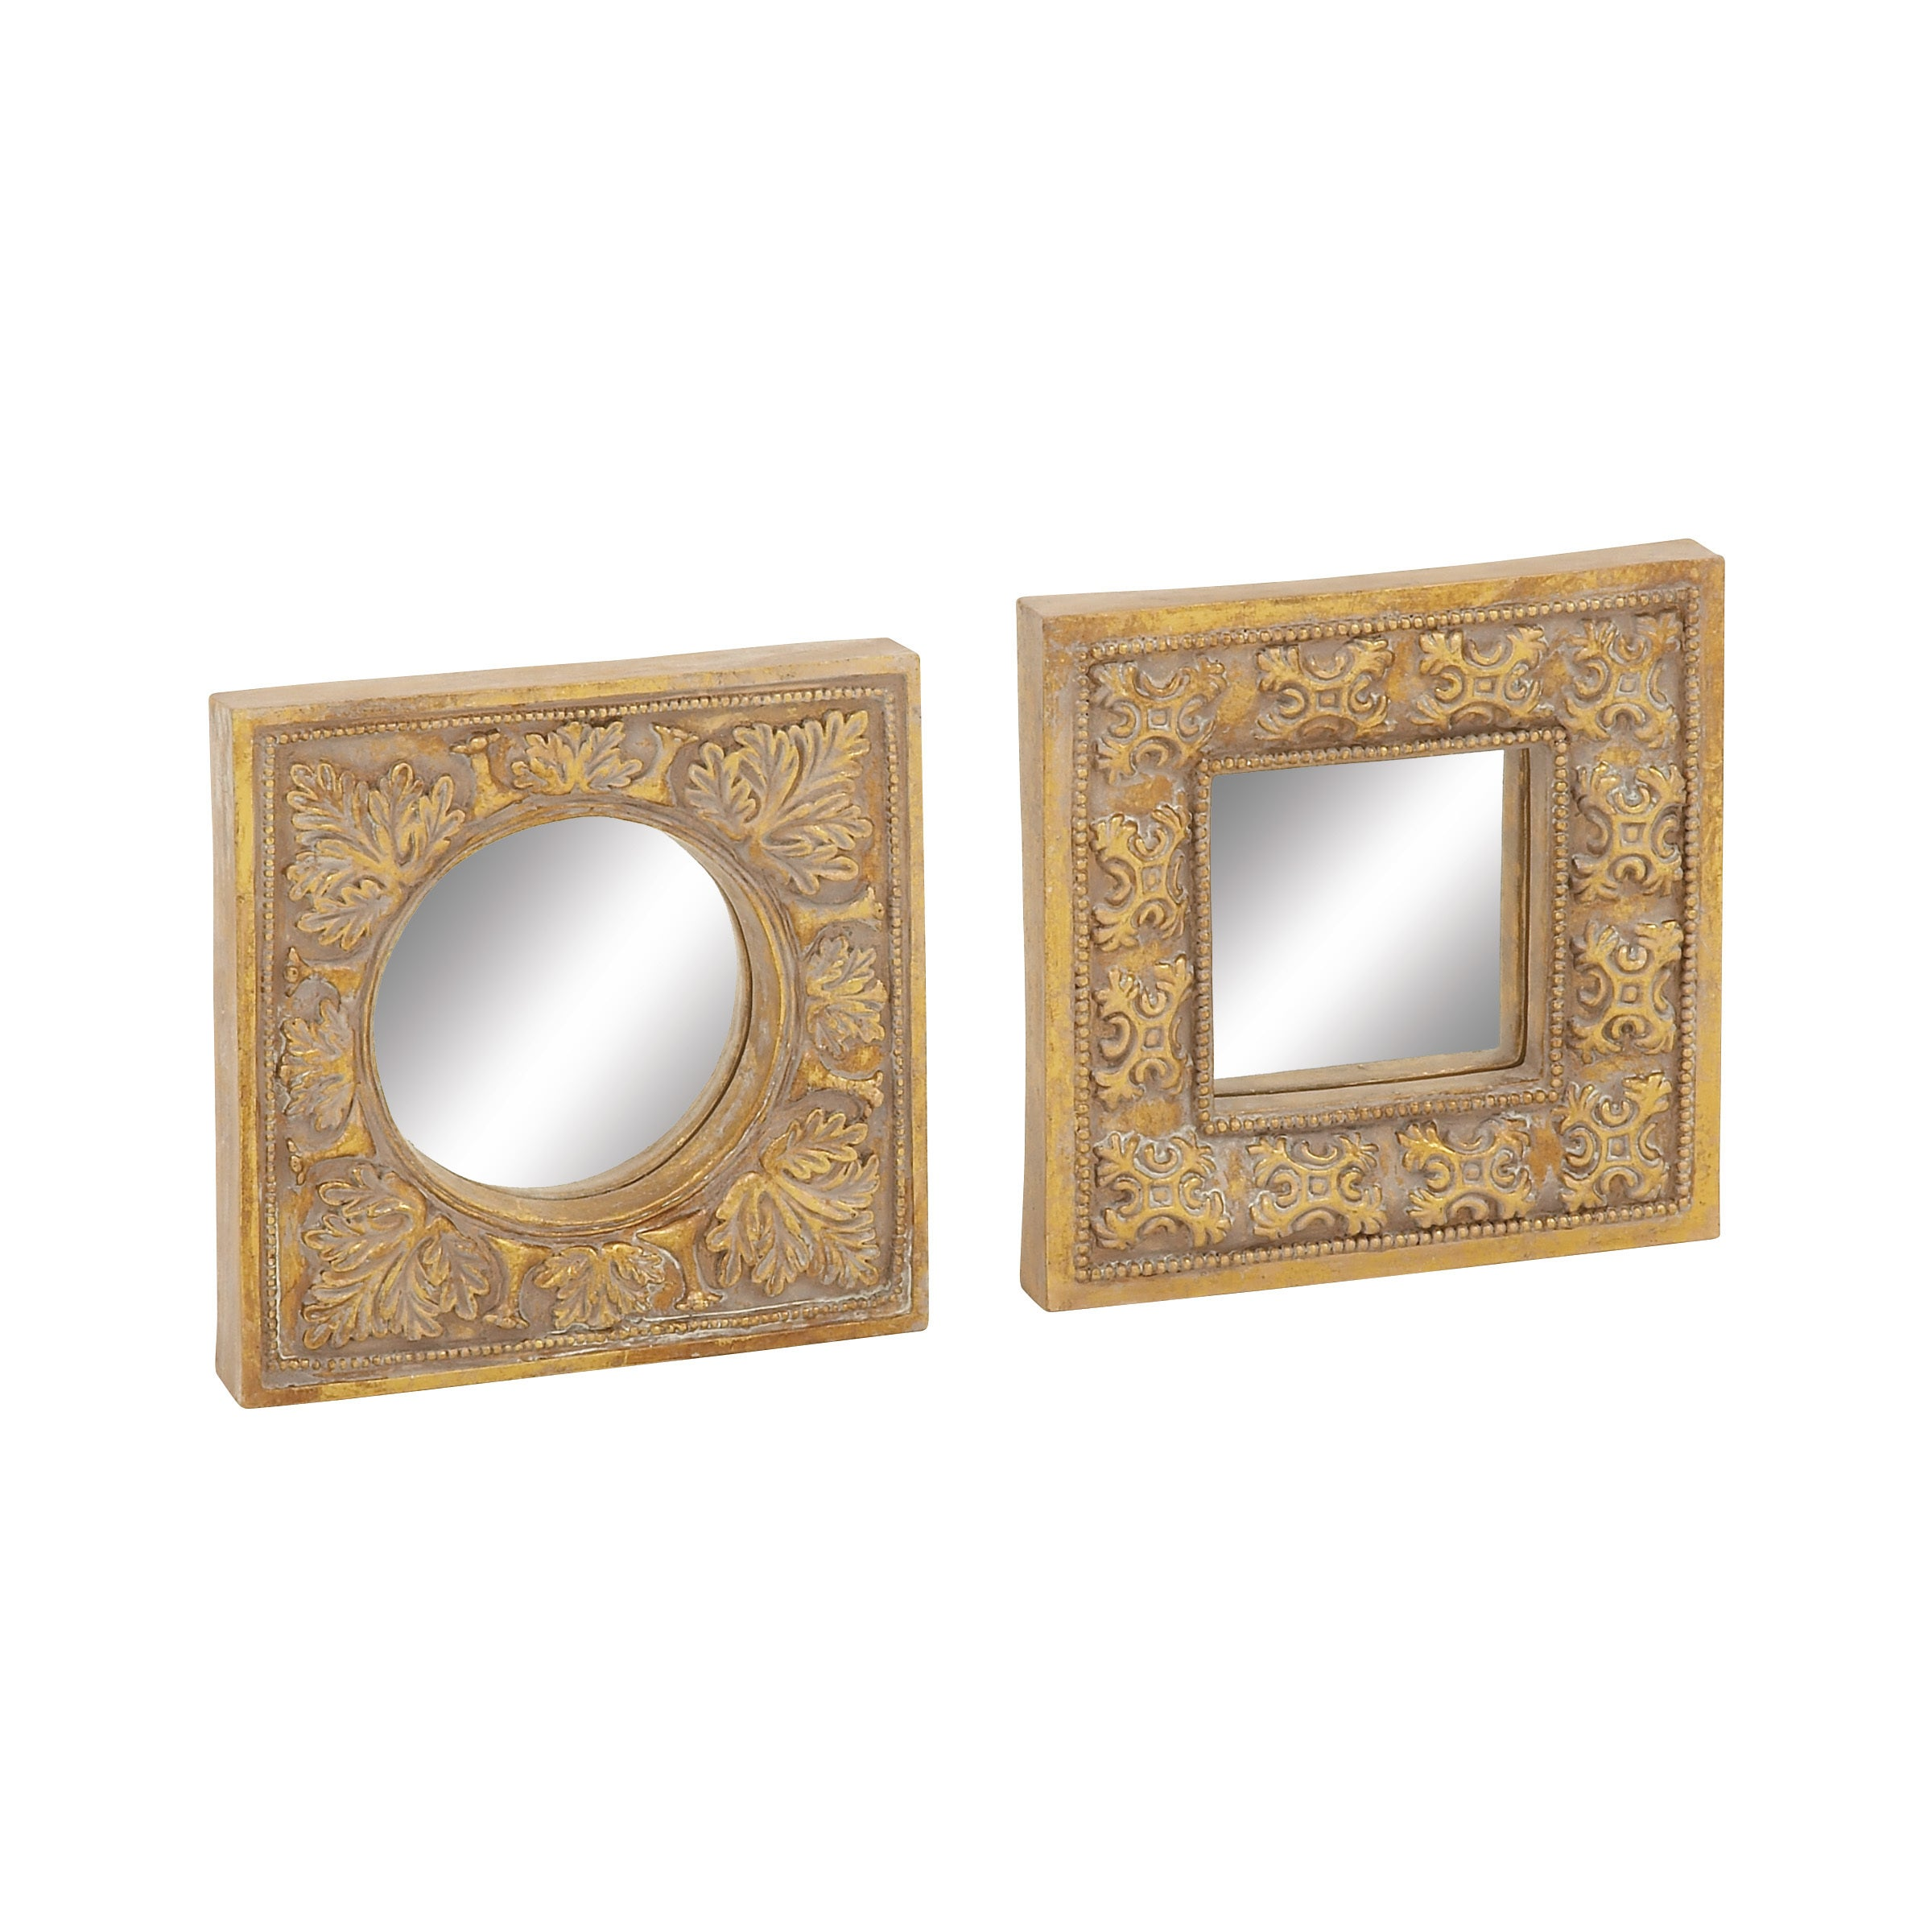 Shop Gold Mirror Wall Decor Set Of 2 Overstock 10221001